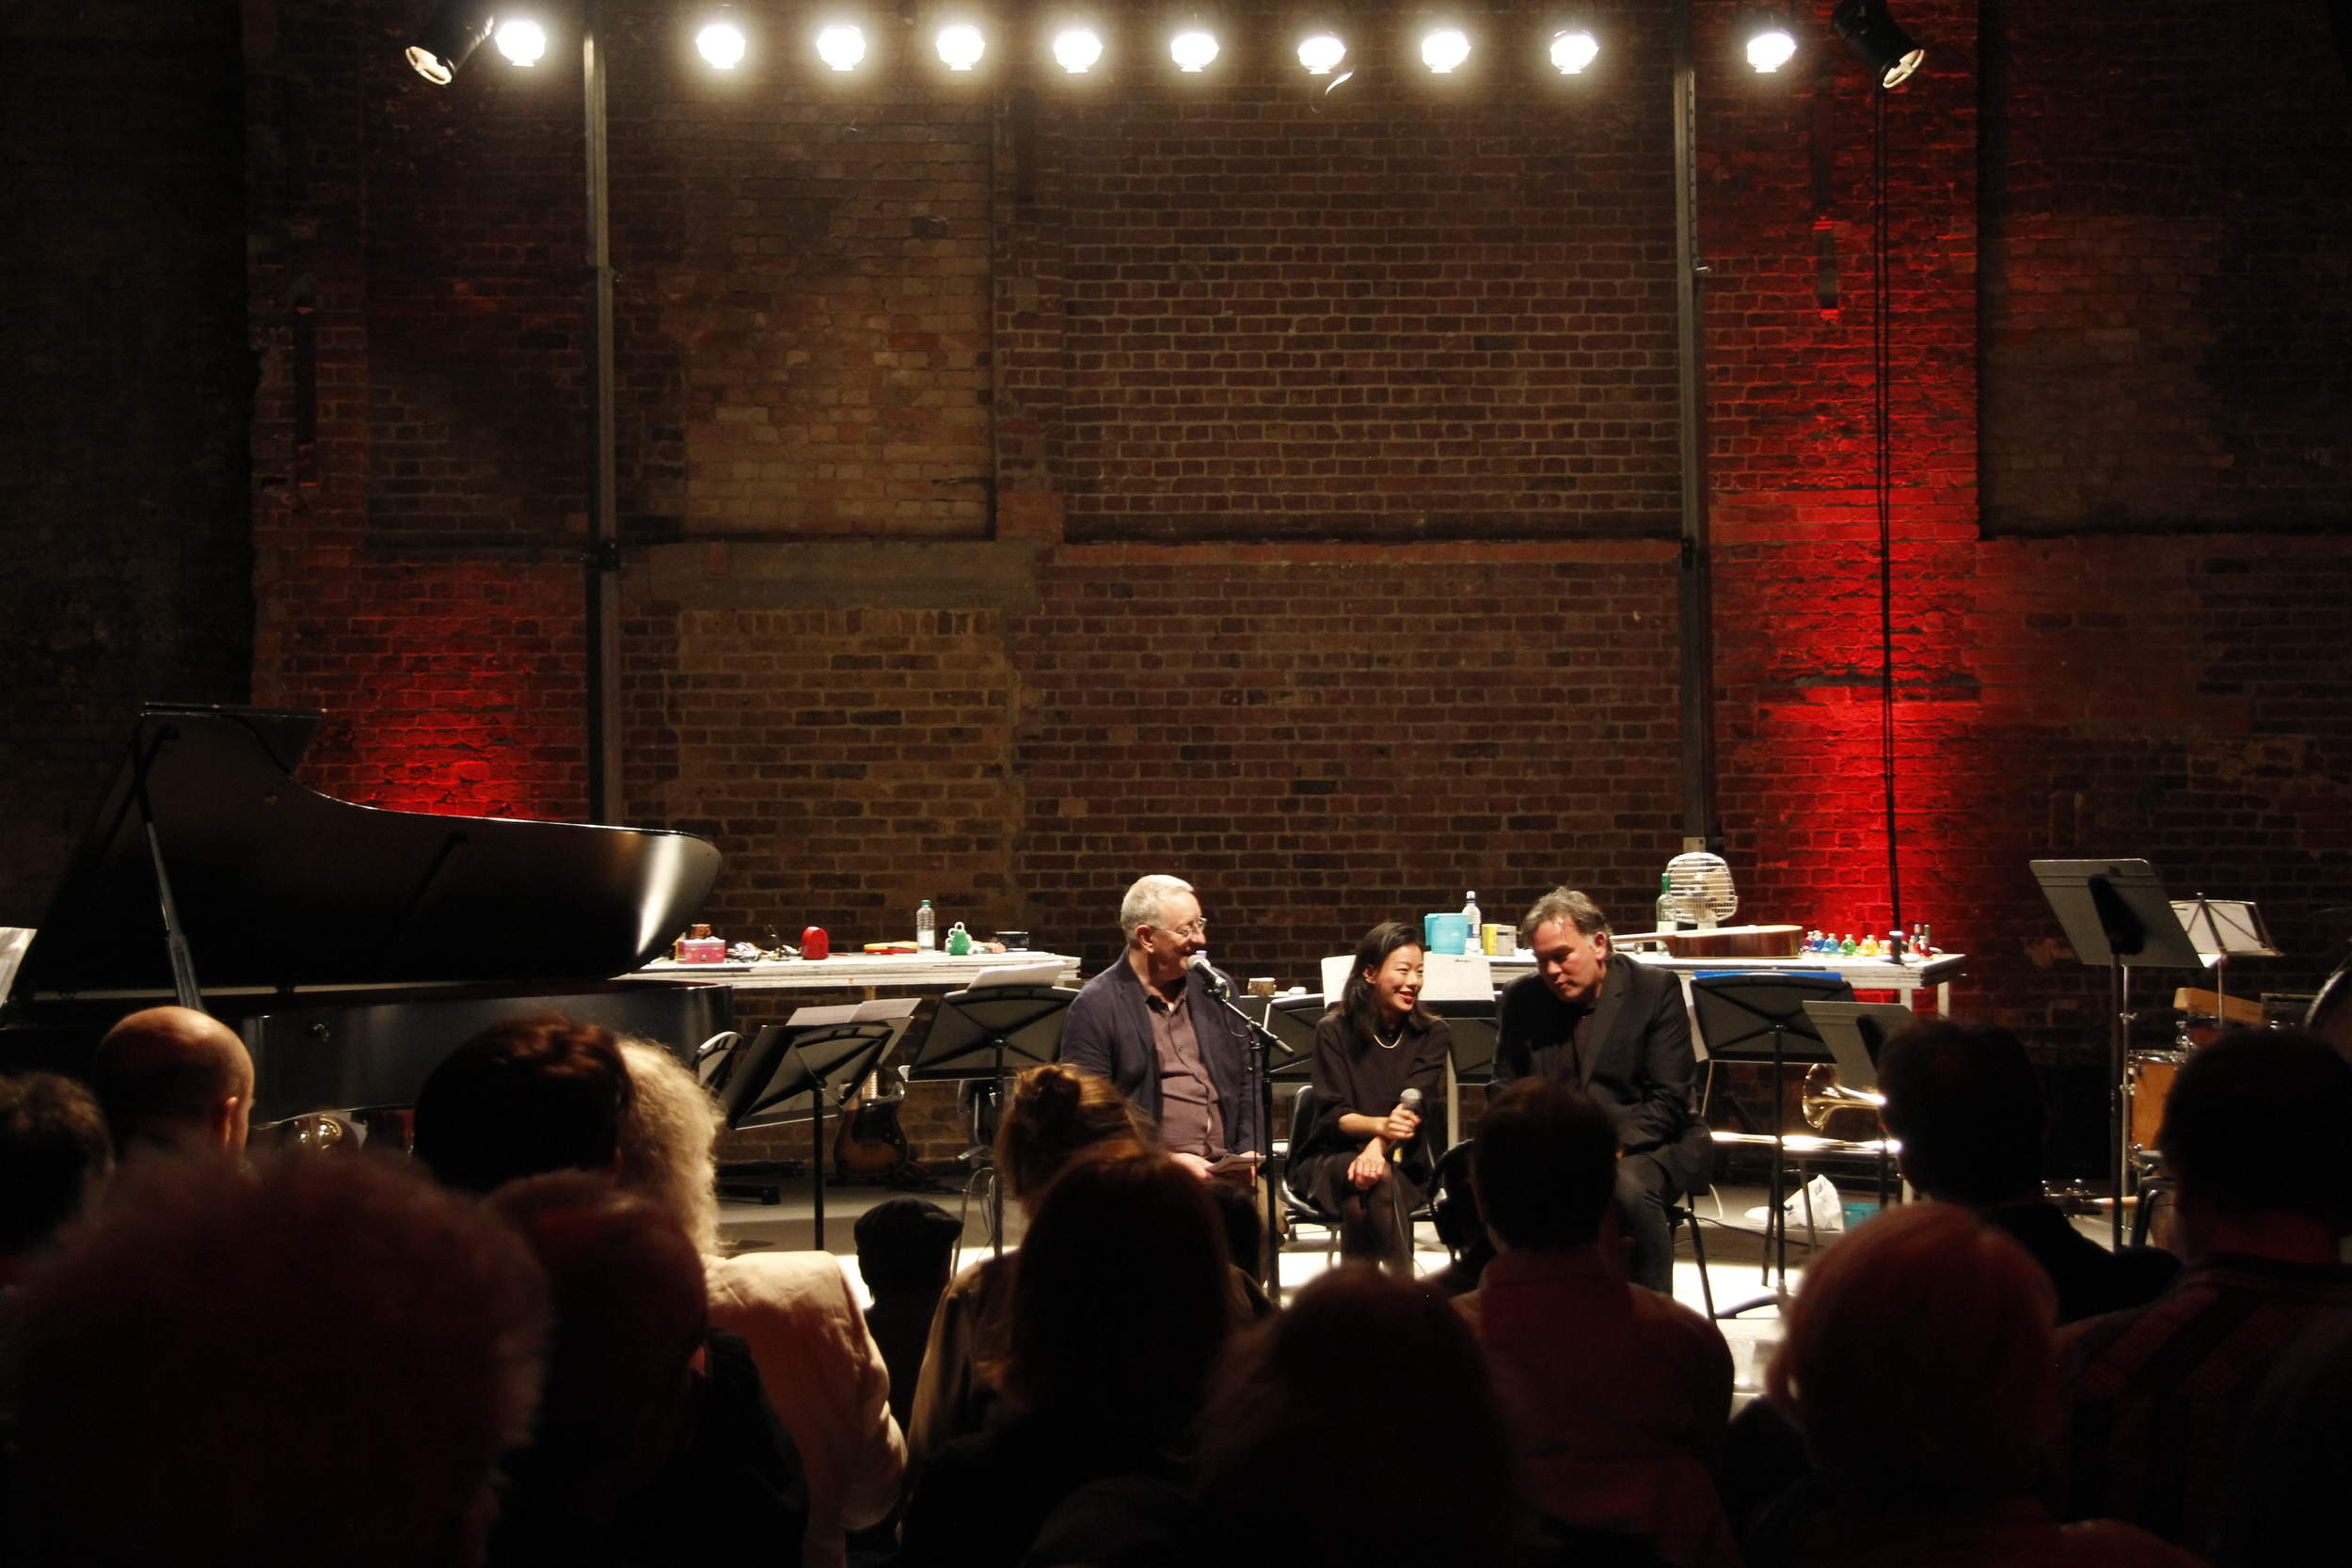 Discussing Familiar/Unfamiliar concert with Steve Beresford and Stewart Lee at the Spitalfields Festival, 2014